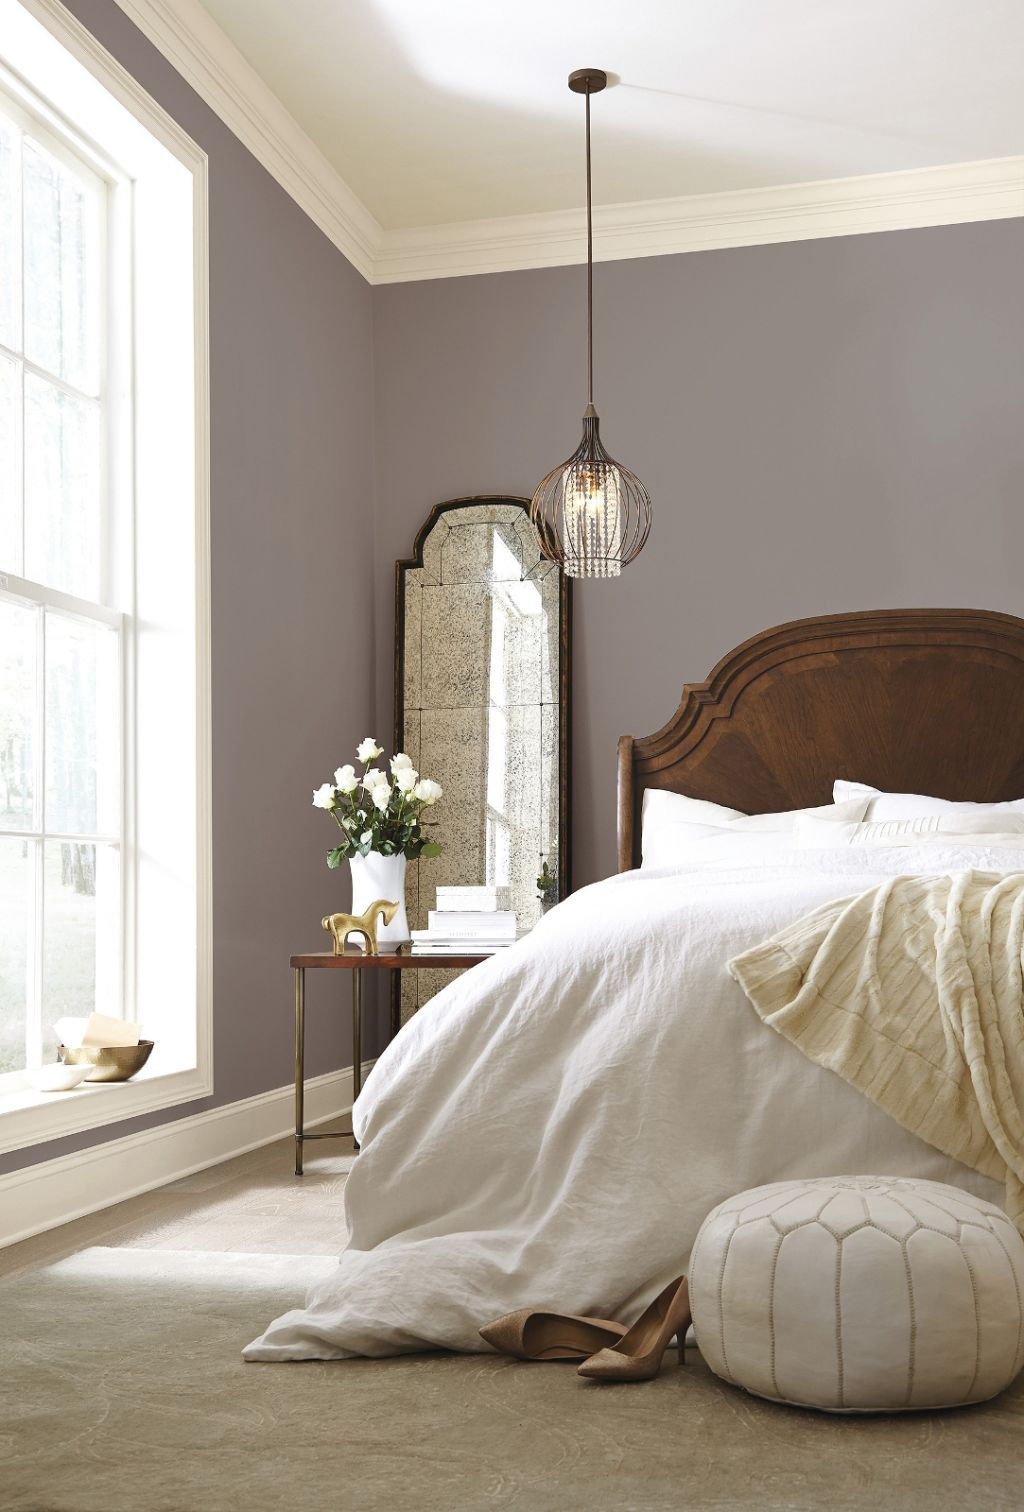 Paint colors for bedrooms - Sherwin Williams Just Announced The Color Of The Year Taupe Paint Colorsbedroom